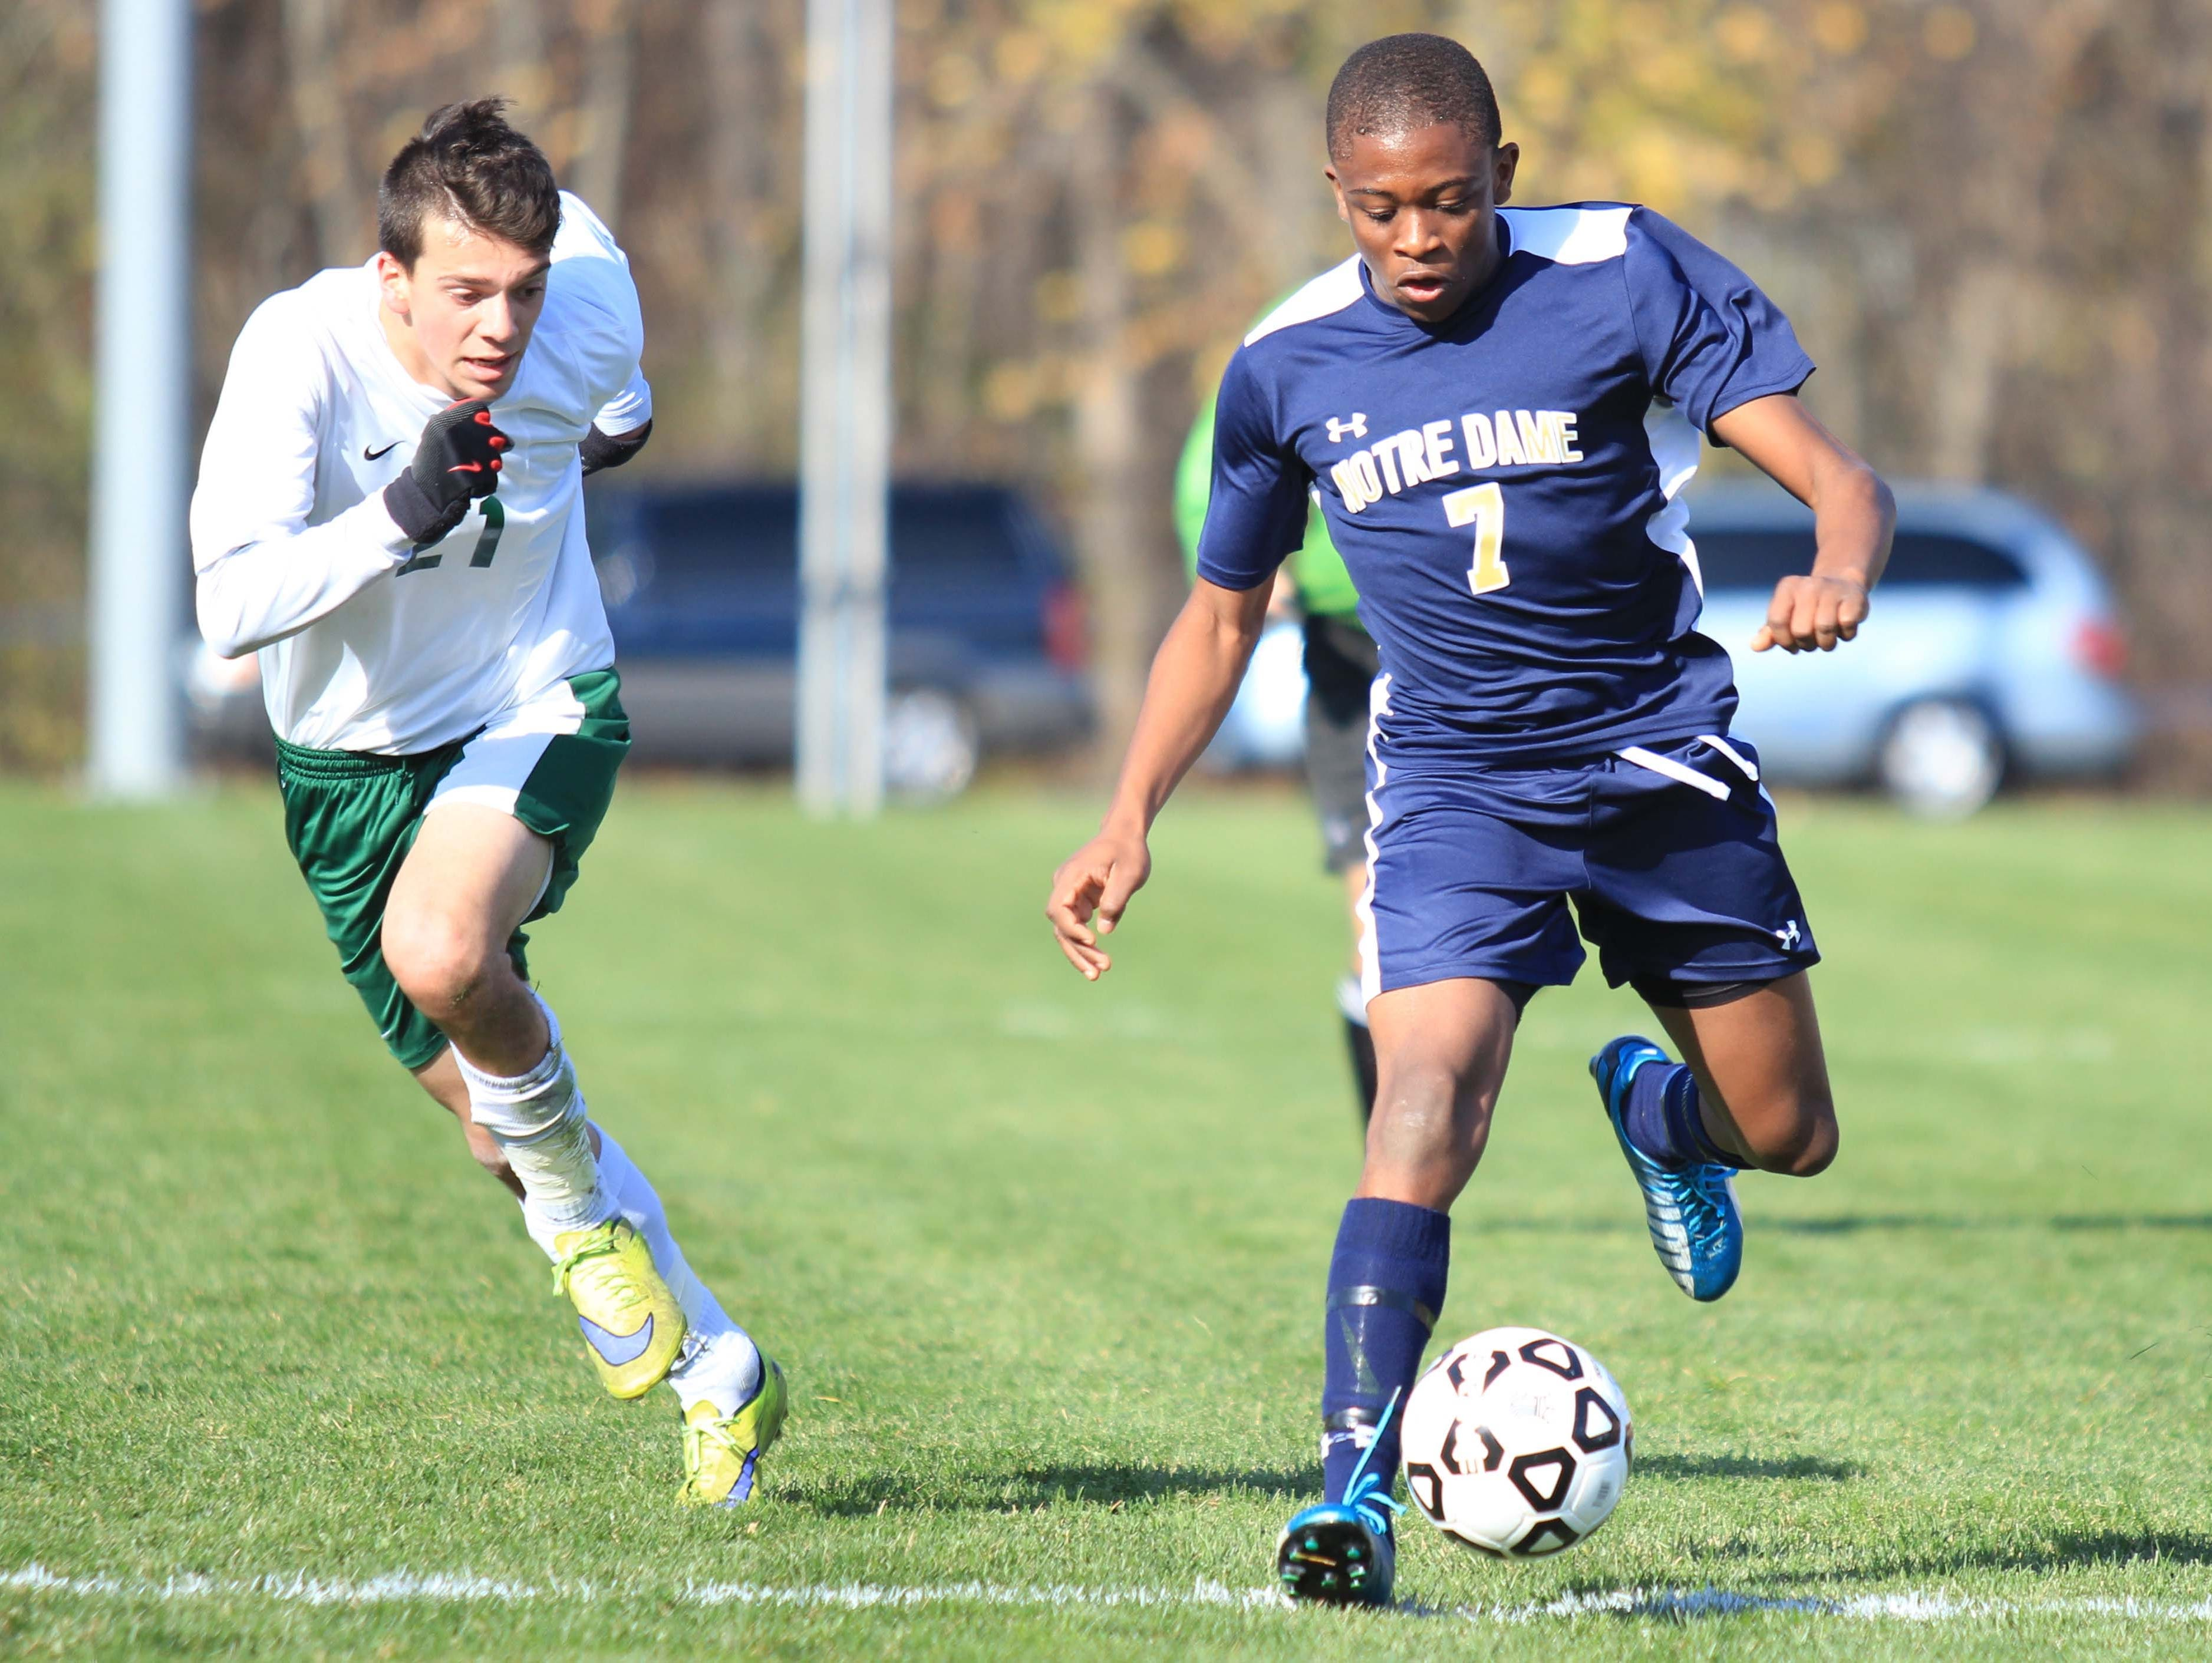 Notre Dame's Rocco Coulibaly (right) leads the attack during the NYSPHSAA Class C final in Middletown.